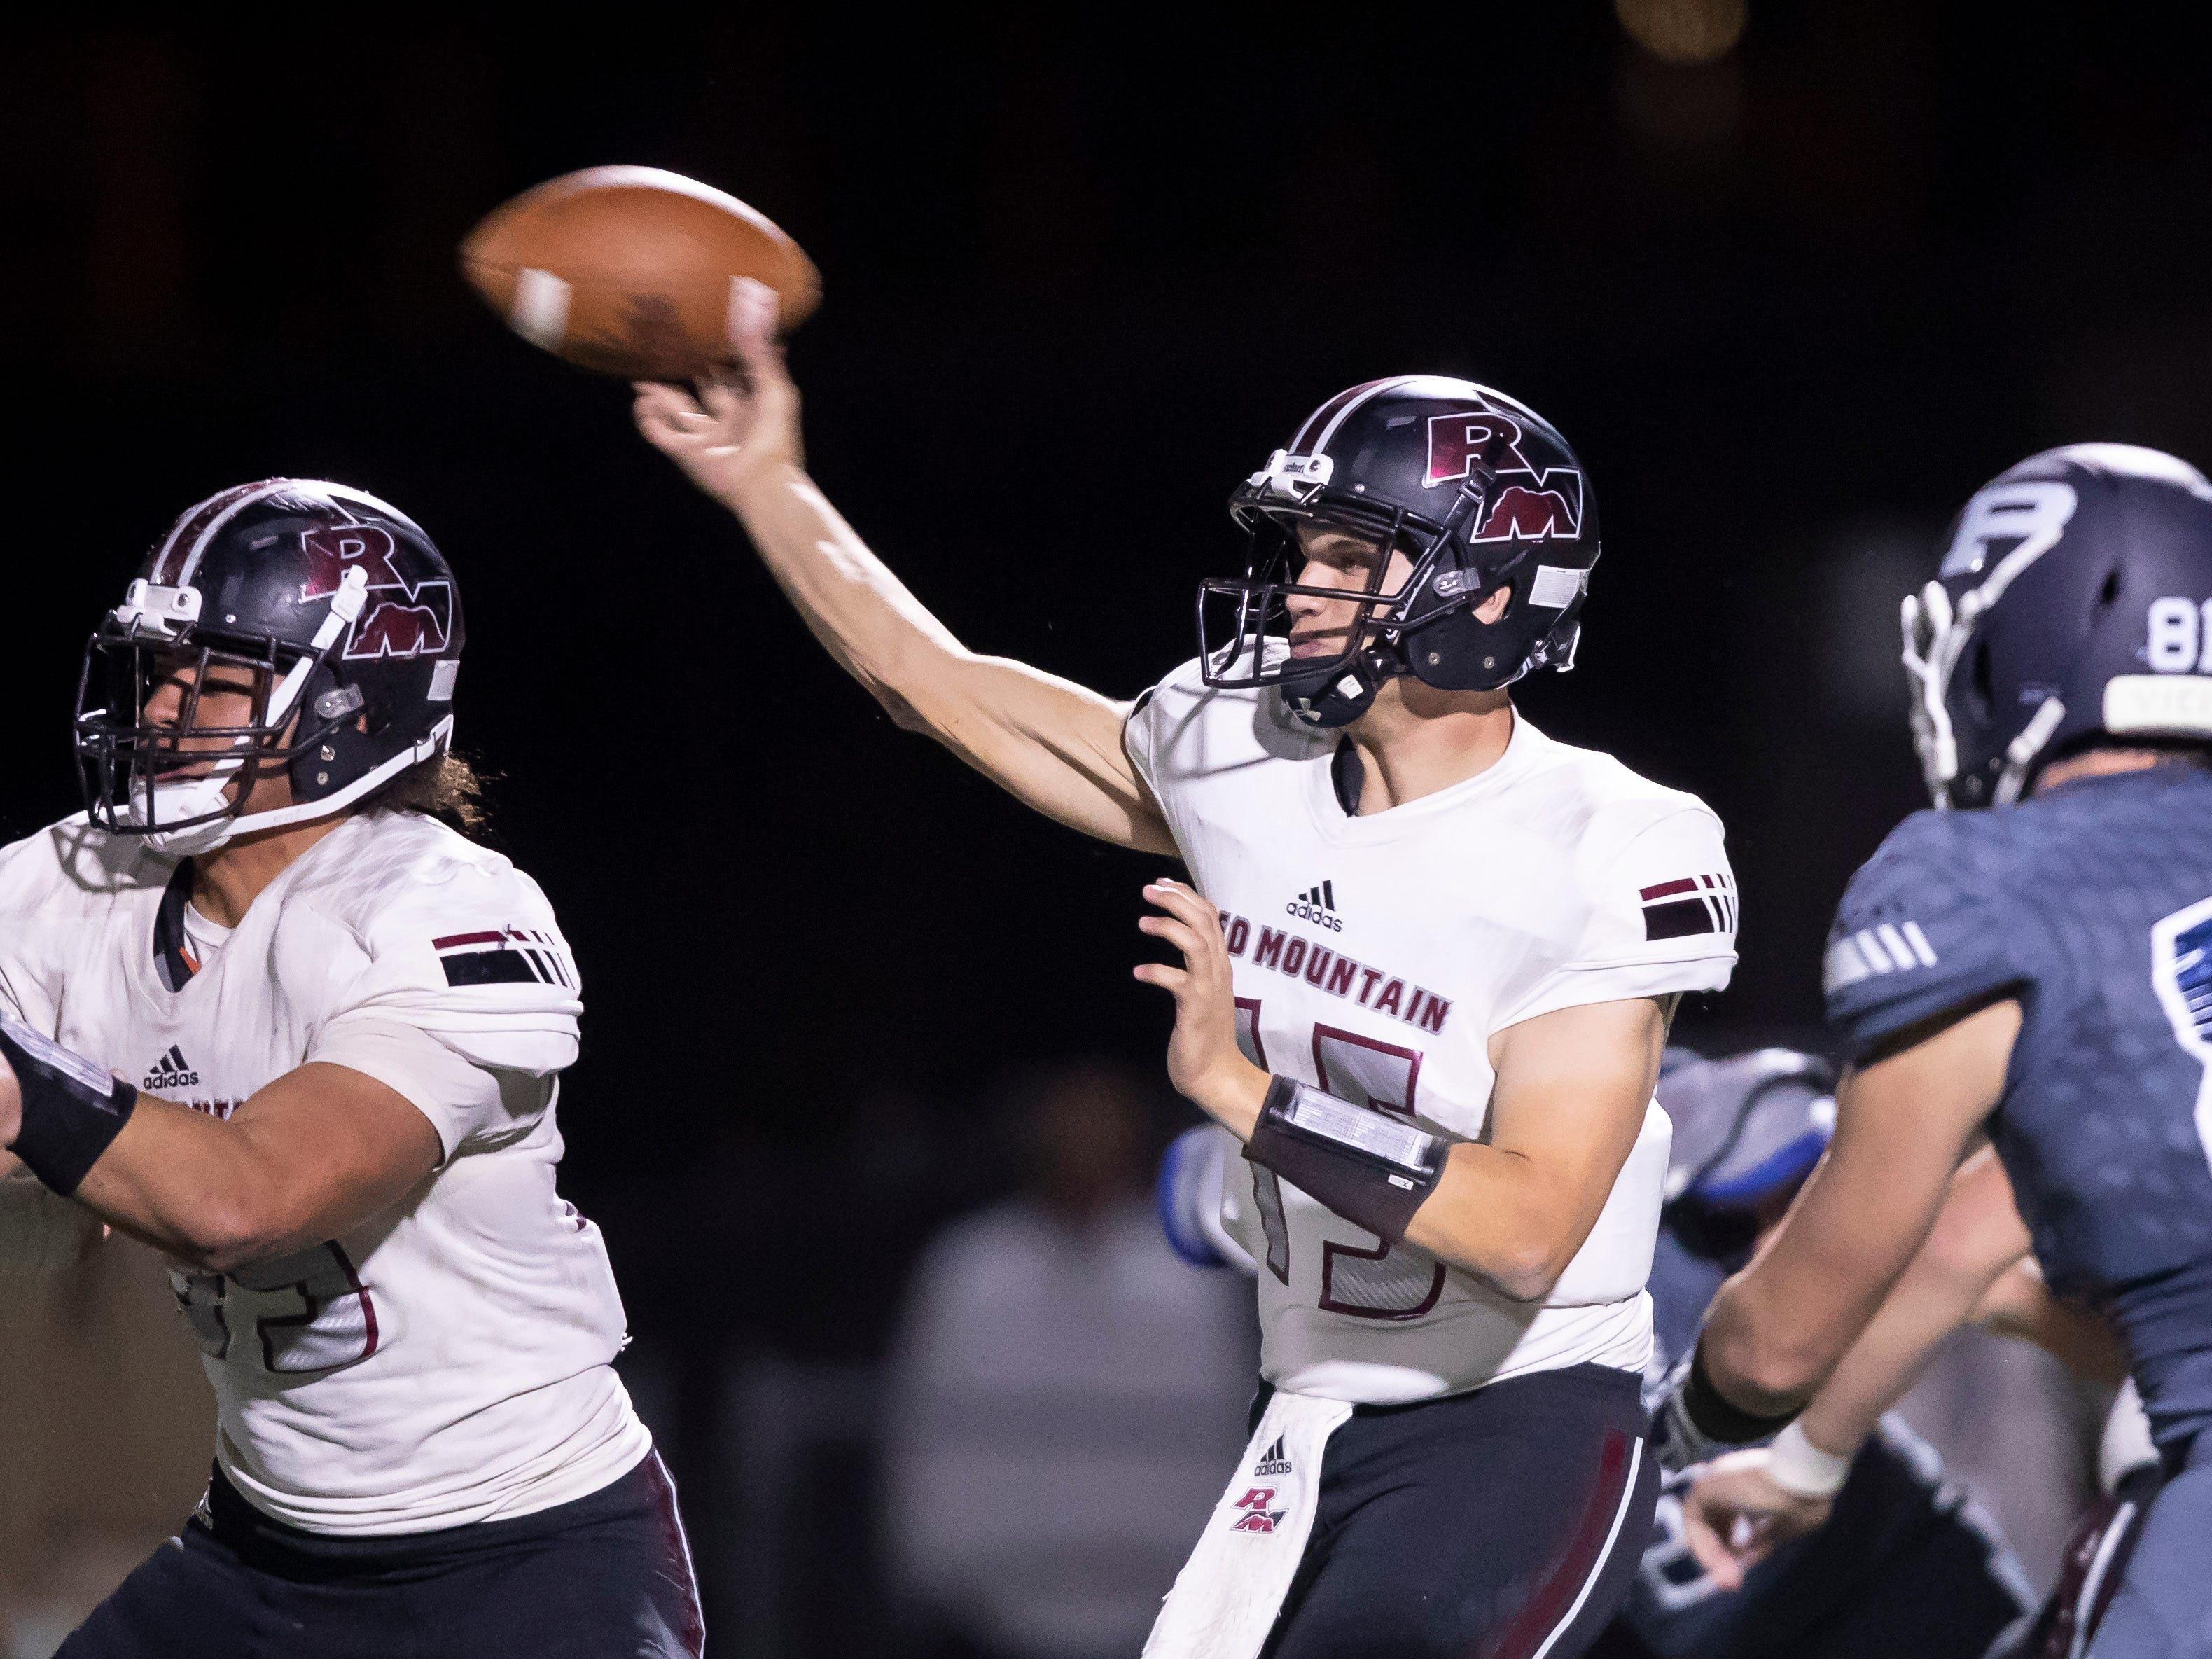 Senior quarterback Darren Smith (15) of the Red Mountain Mountain Lions throws a pass during the playoff game against the Pinnacle Pioneers at Pinnacle High School on Friday, November 9, 2018 in Phoenix, Arizona. #azhsfb